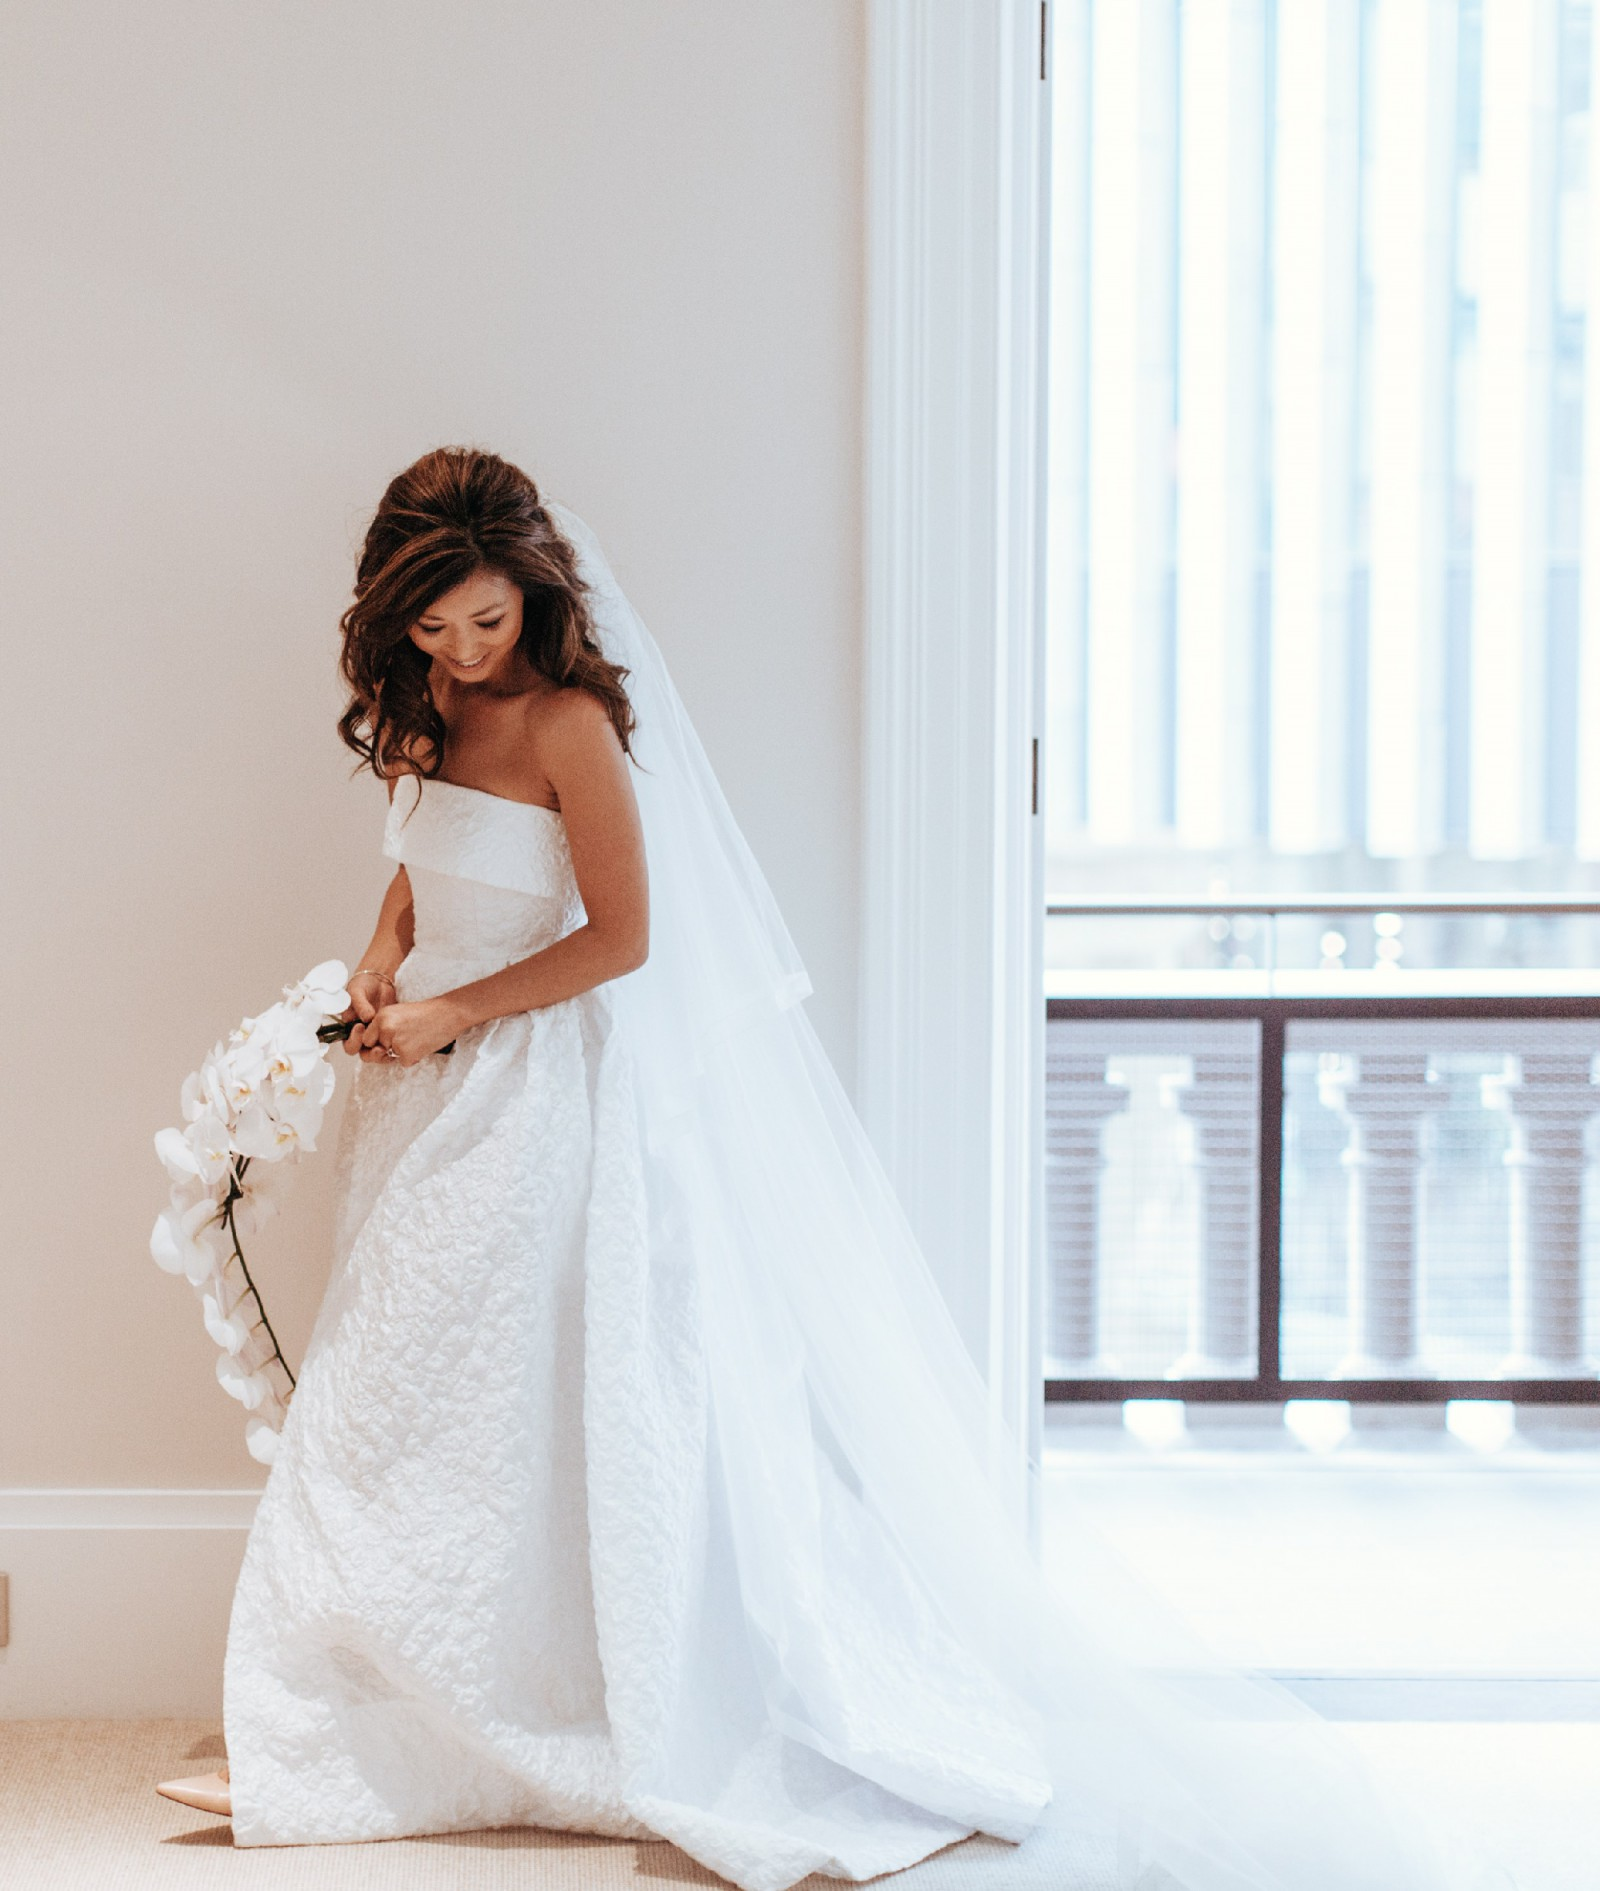 Alex Perry Wedding Gowns: Alex Perry Christie Gown, Belle De Jour Collection Used